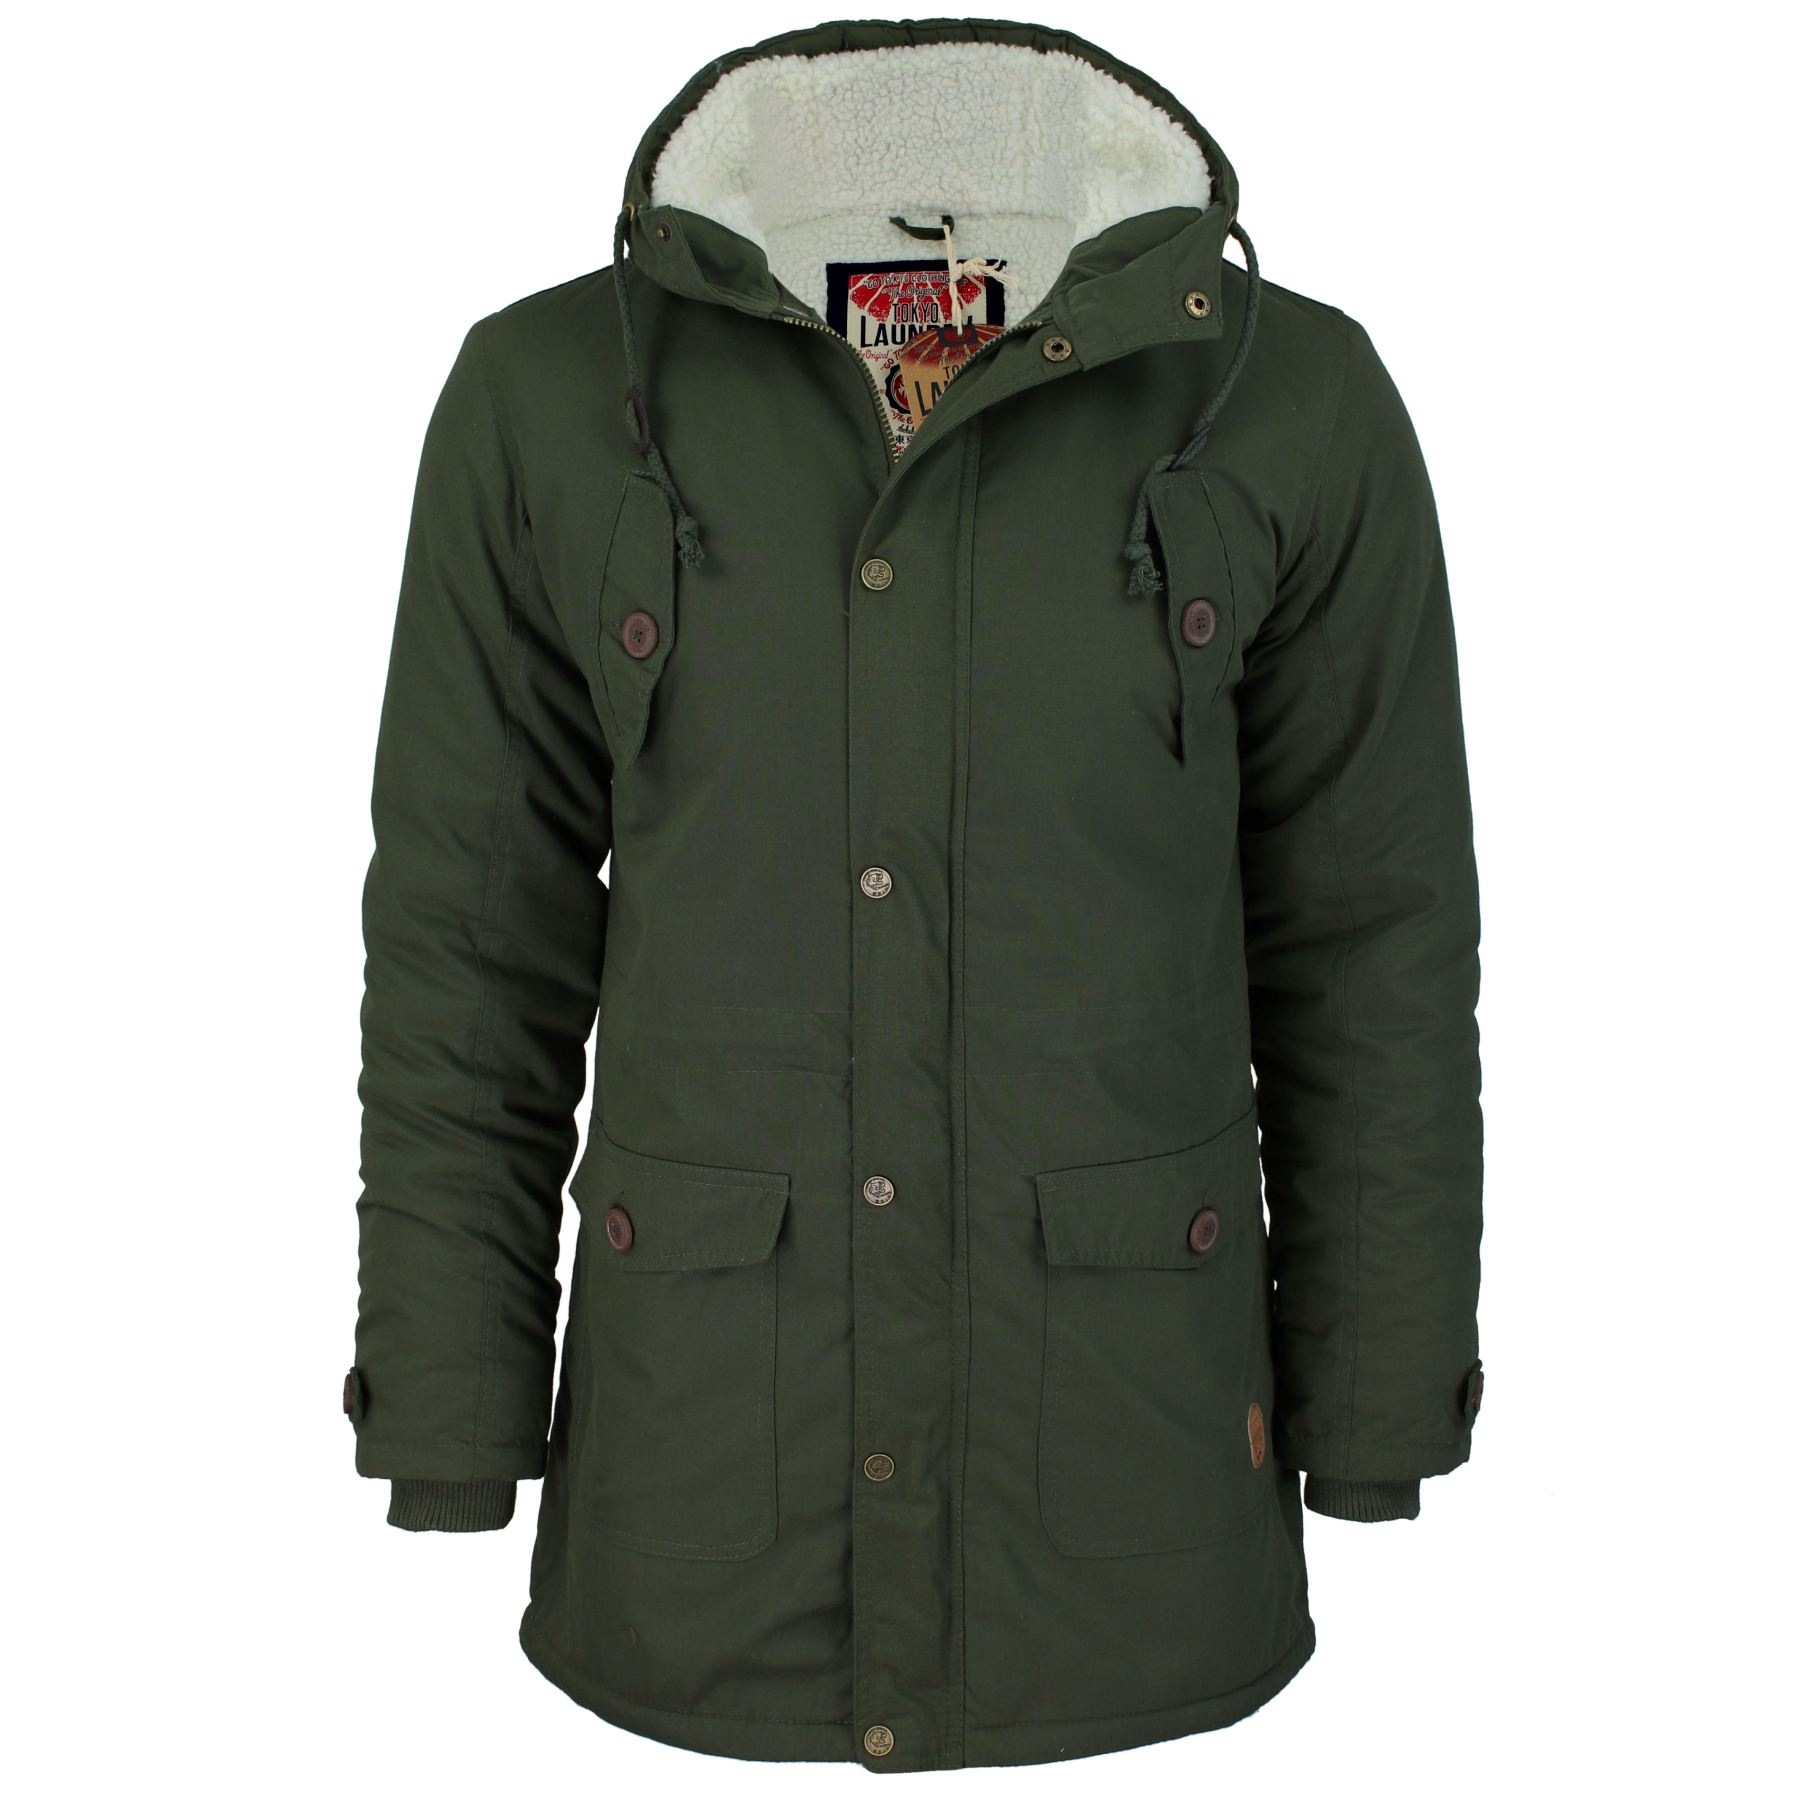 Mens Fleece Hooded Jacket | Outdoor Jacket